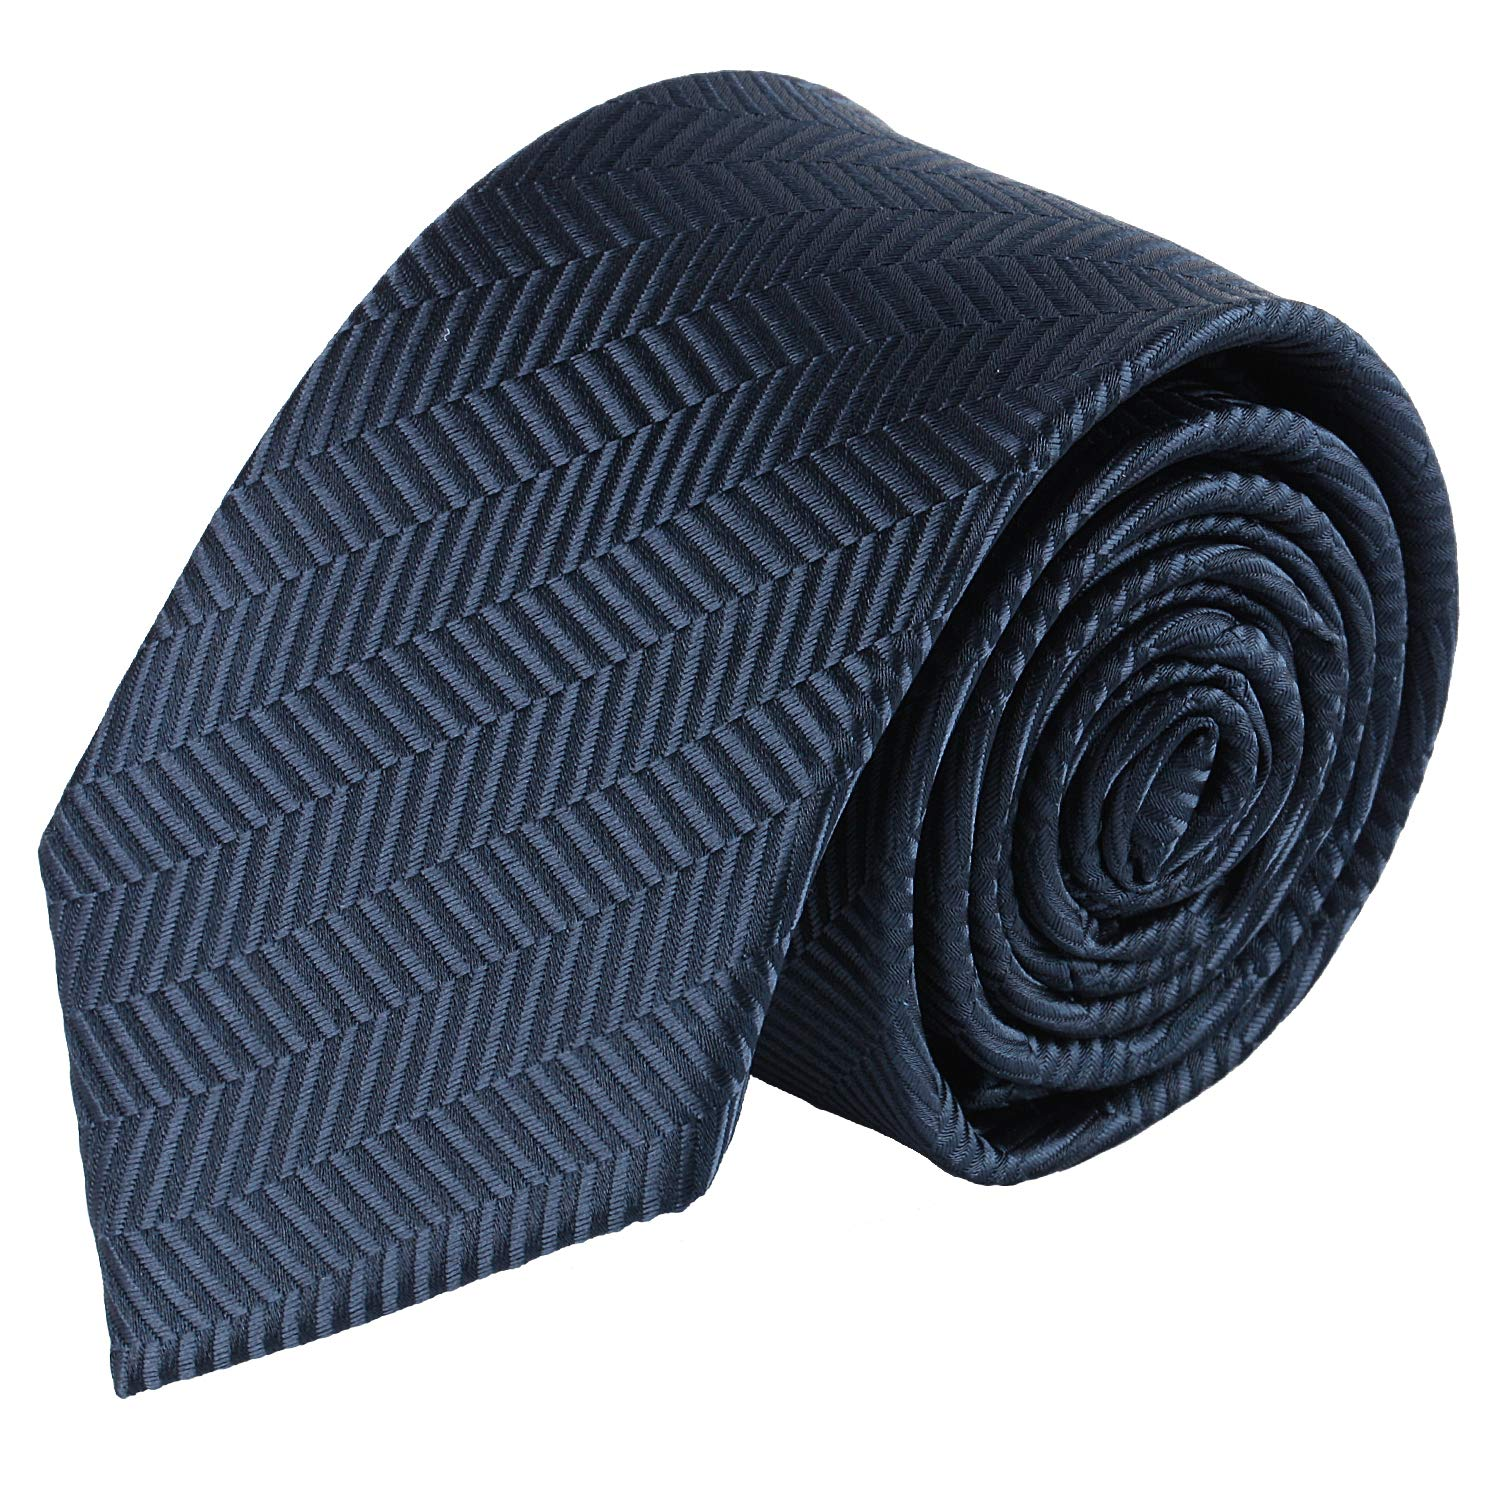 Jacob Alexander Boys Tone on Tone Herringbone Neck Tie - Navy